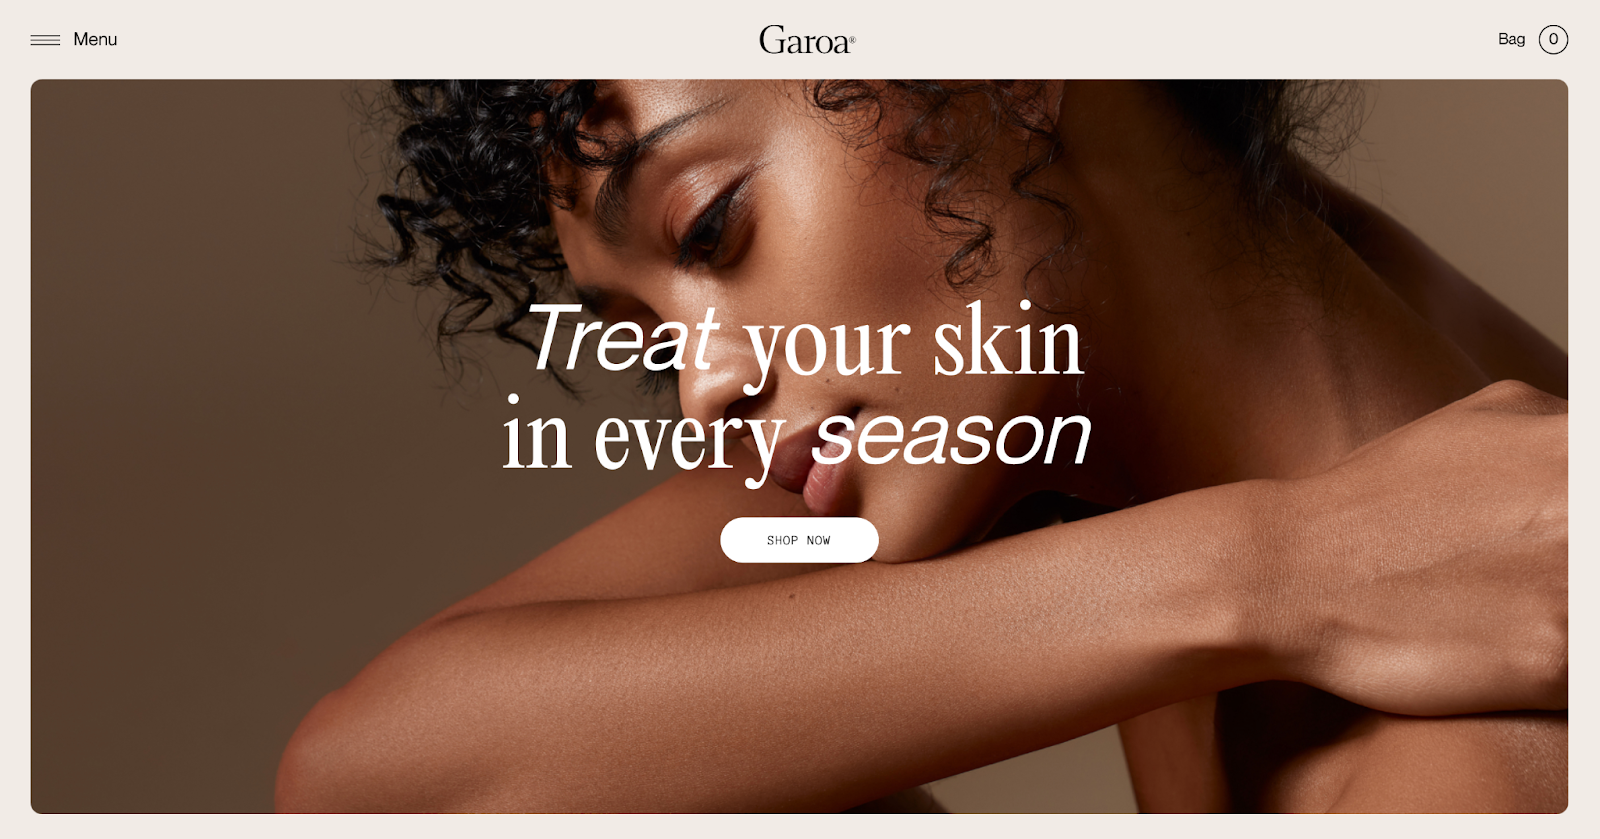 garoa skincare best website design award winner 2020